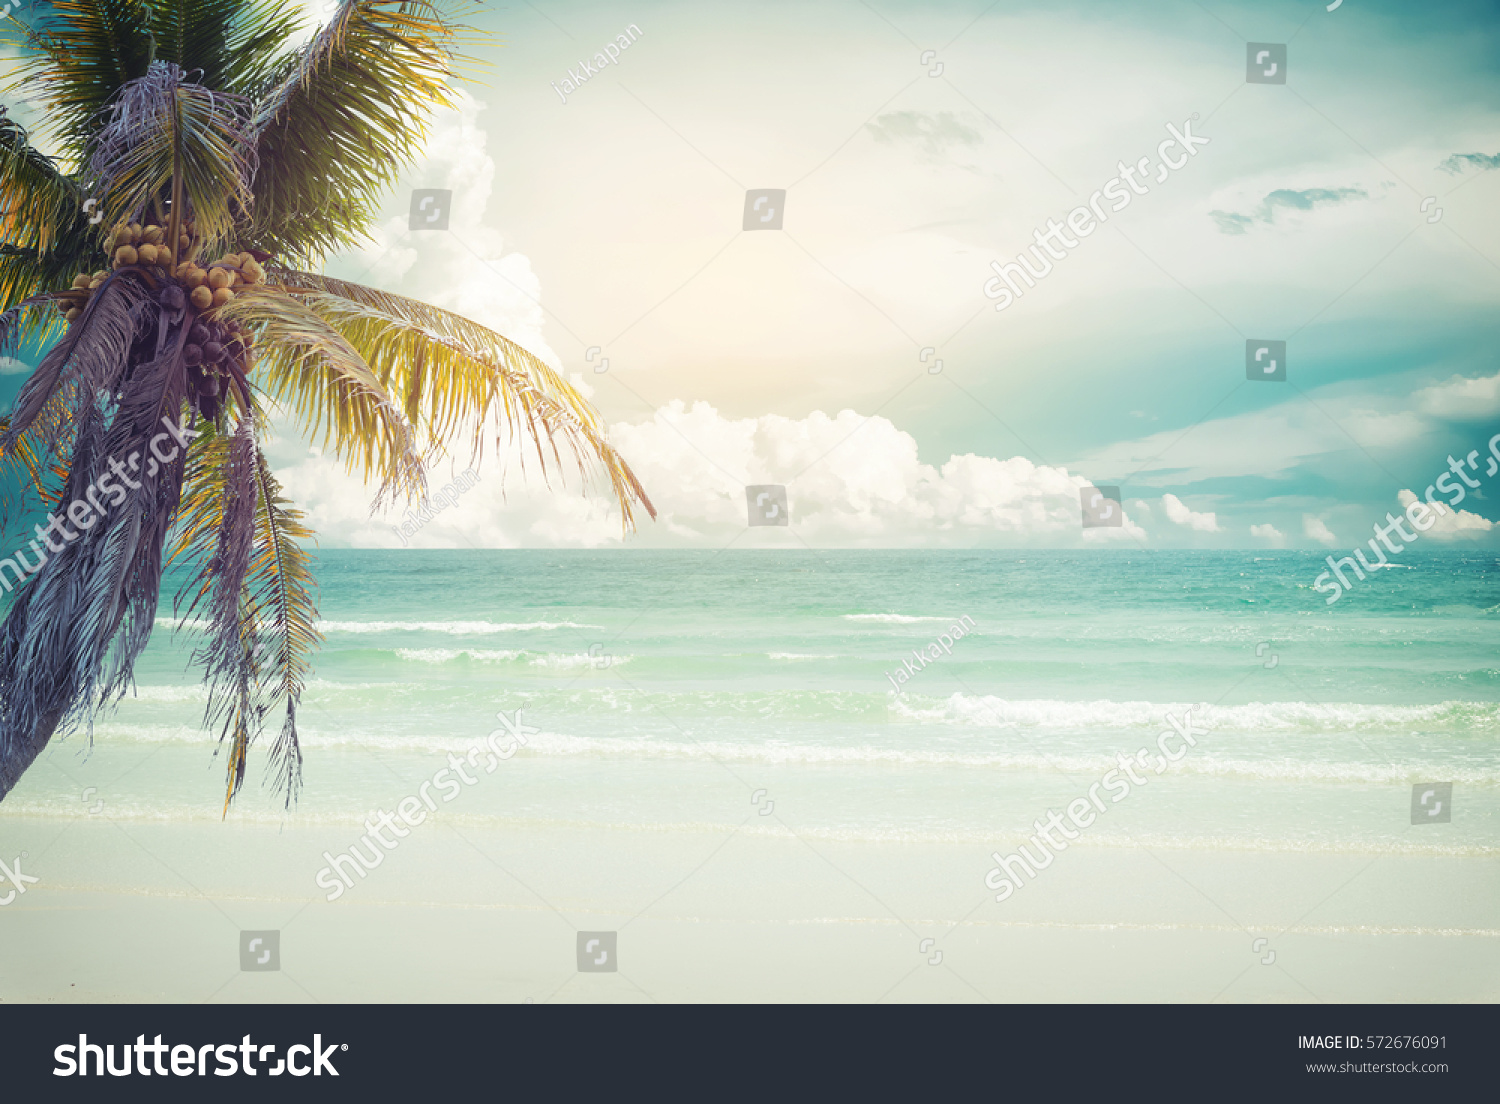 Vintage Tropical Beach Seascape Palm Tree Stock Photo (Download Now ...